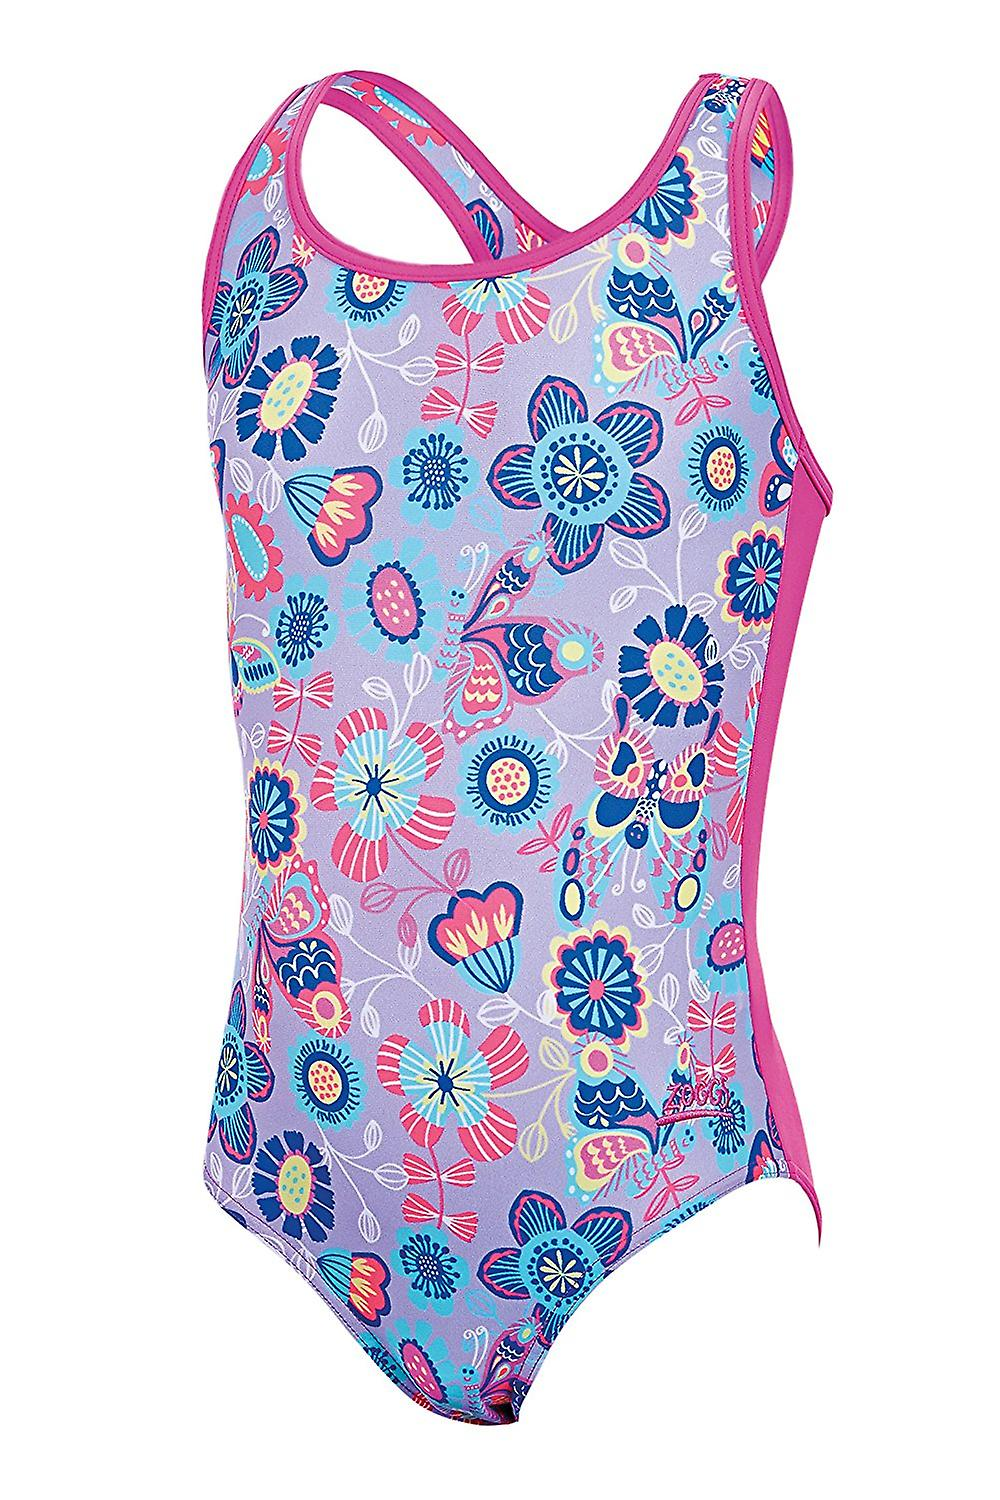 8b64f8a539 ZOGGS Girls Wild Actionback Swimsuit - Lilac Multi